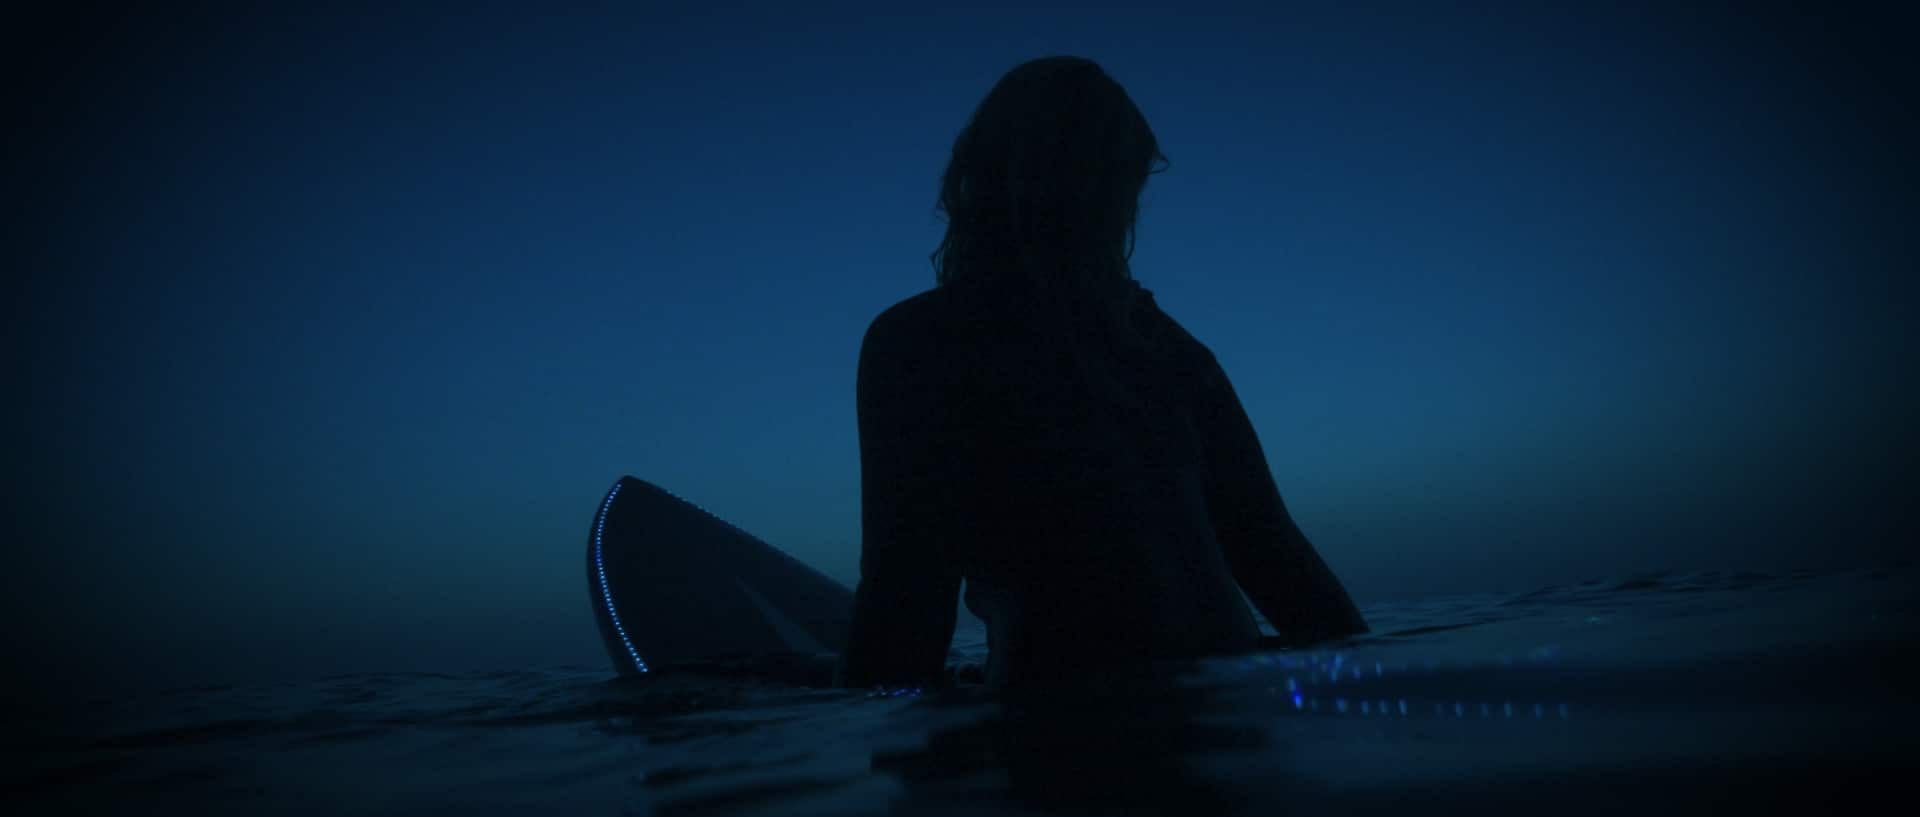 The Shorties entry: Night Rose / Film by Harry Anscombe. Rose is an old lady. One afternoon, home alone as usual, Rose has a surf vision revealing a passion